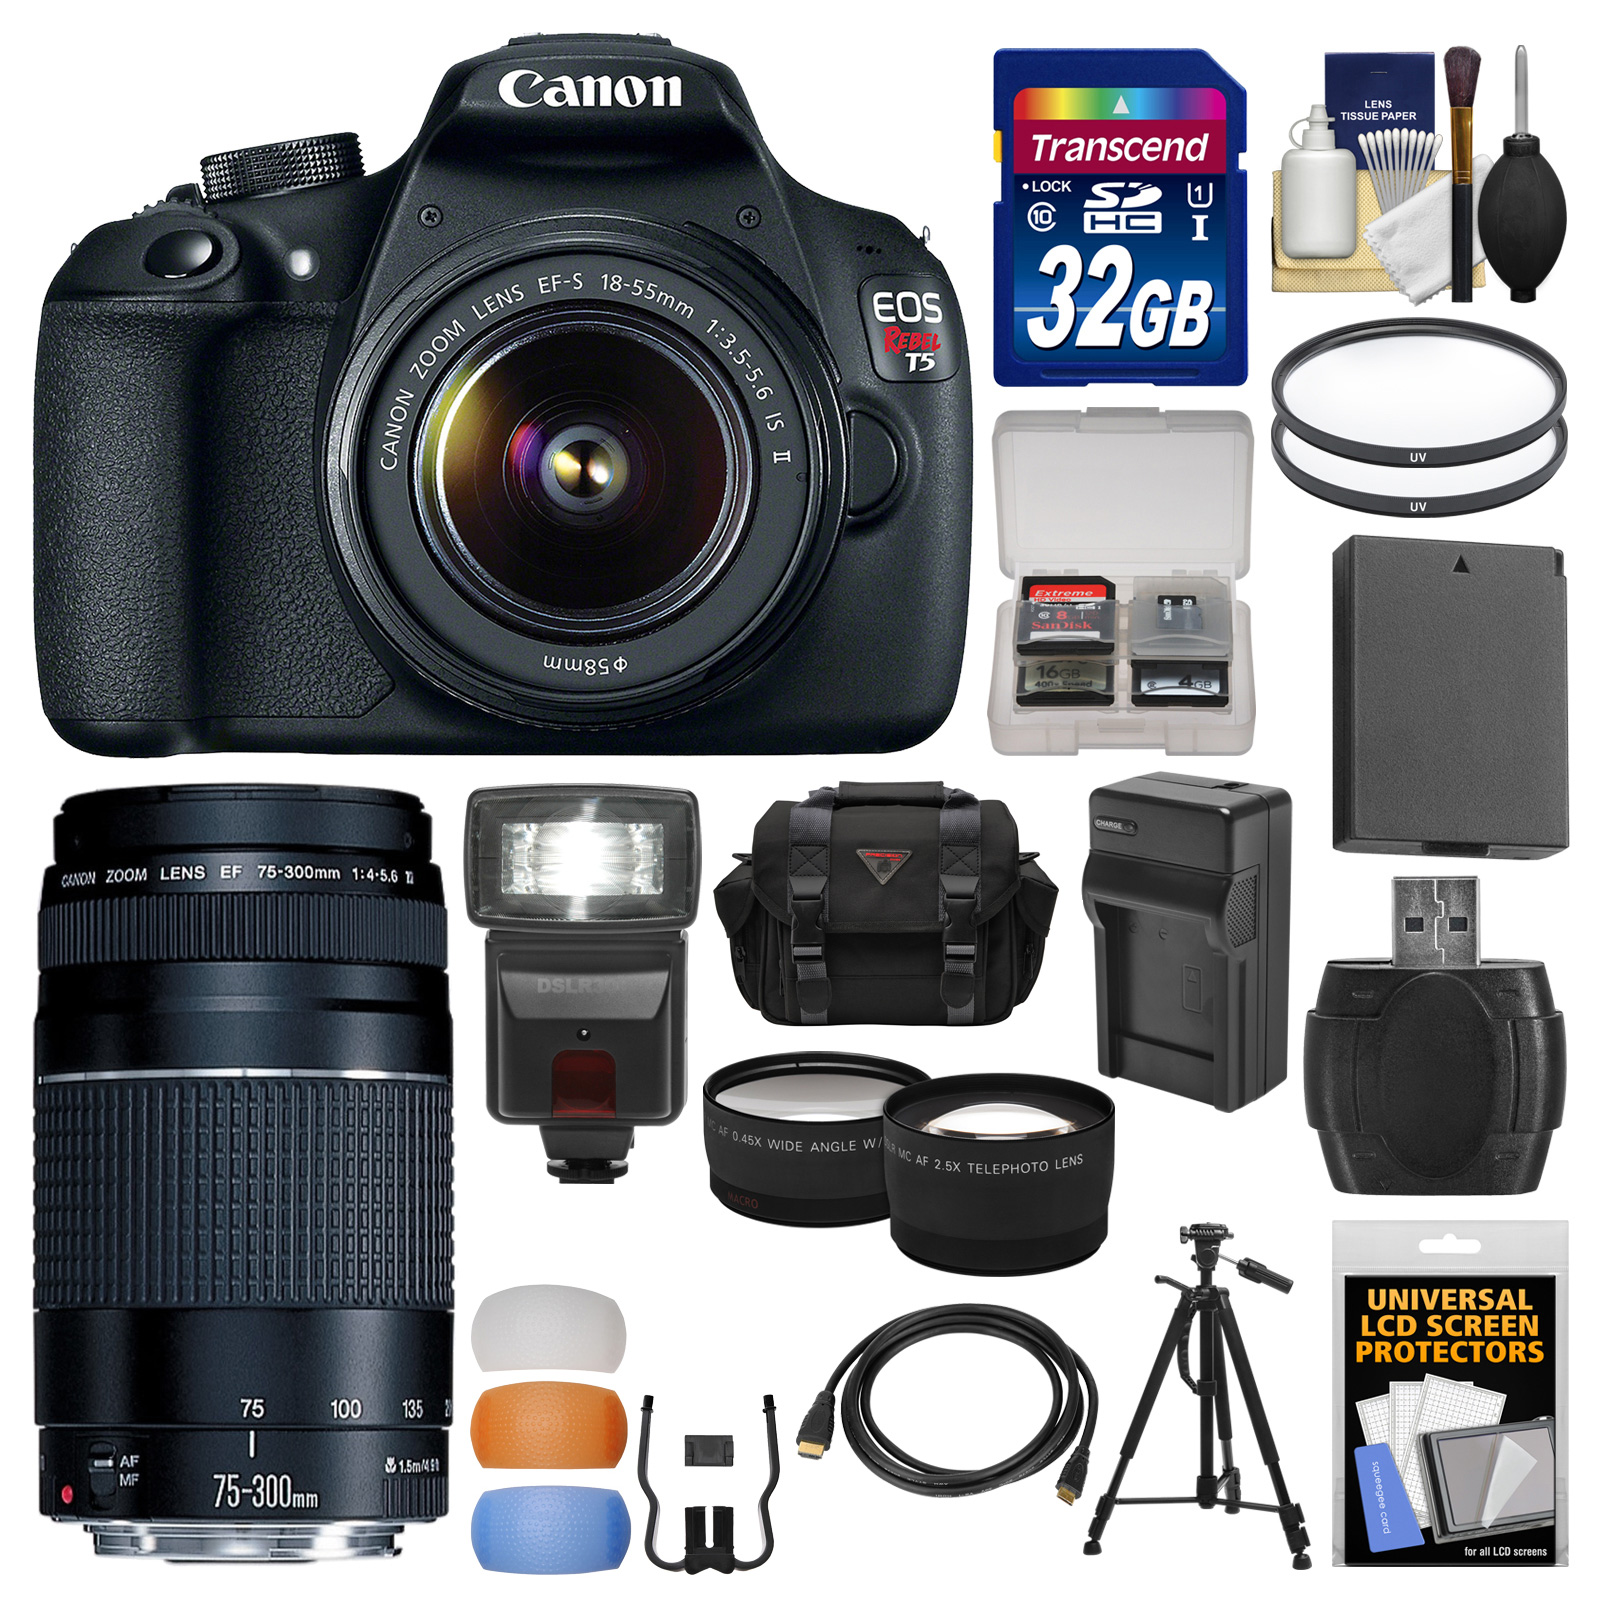 Canon EOS Rebel T5 Digital SLR Camera Body & EF-S 18-55mm IS II with 75-300mm III Lens   32GB Card   Case   Flash   Battery   Tripod   Kit